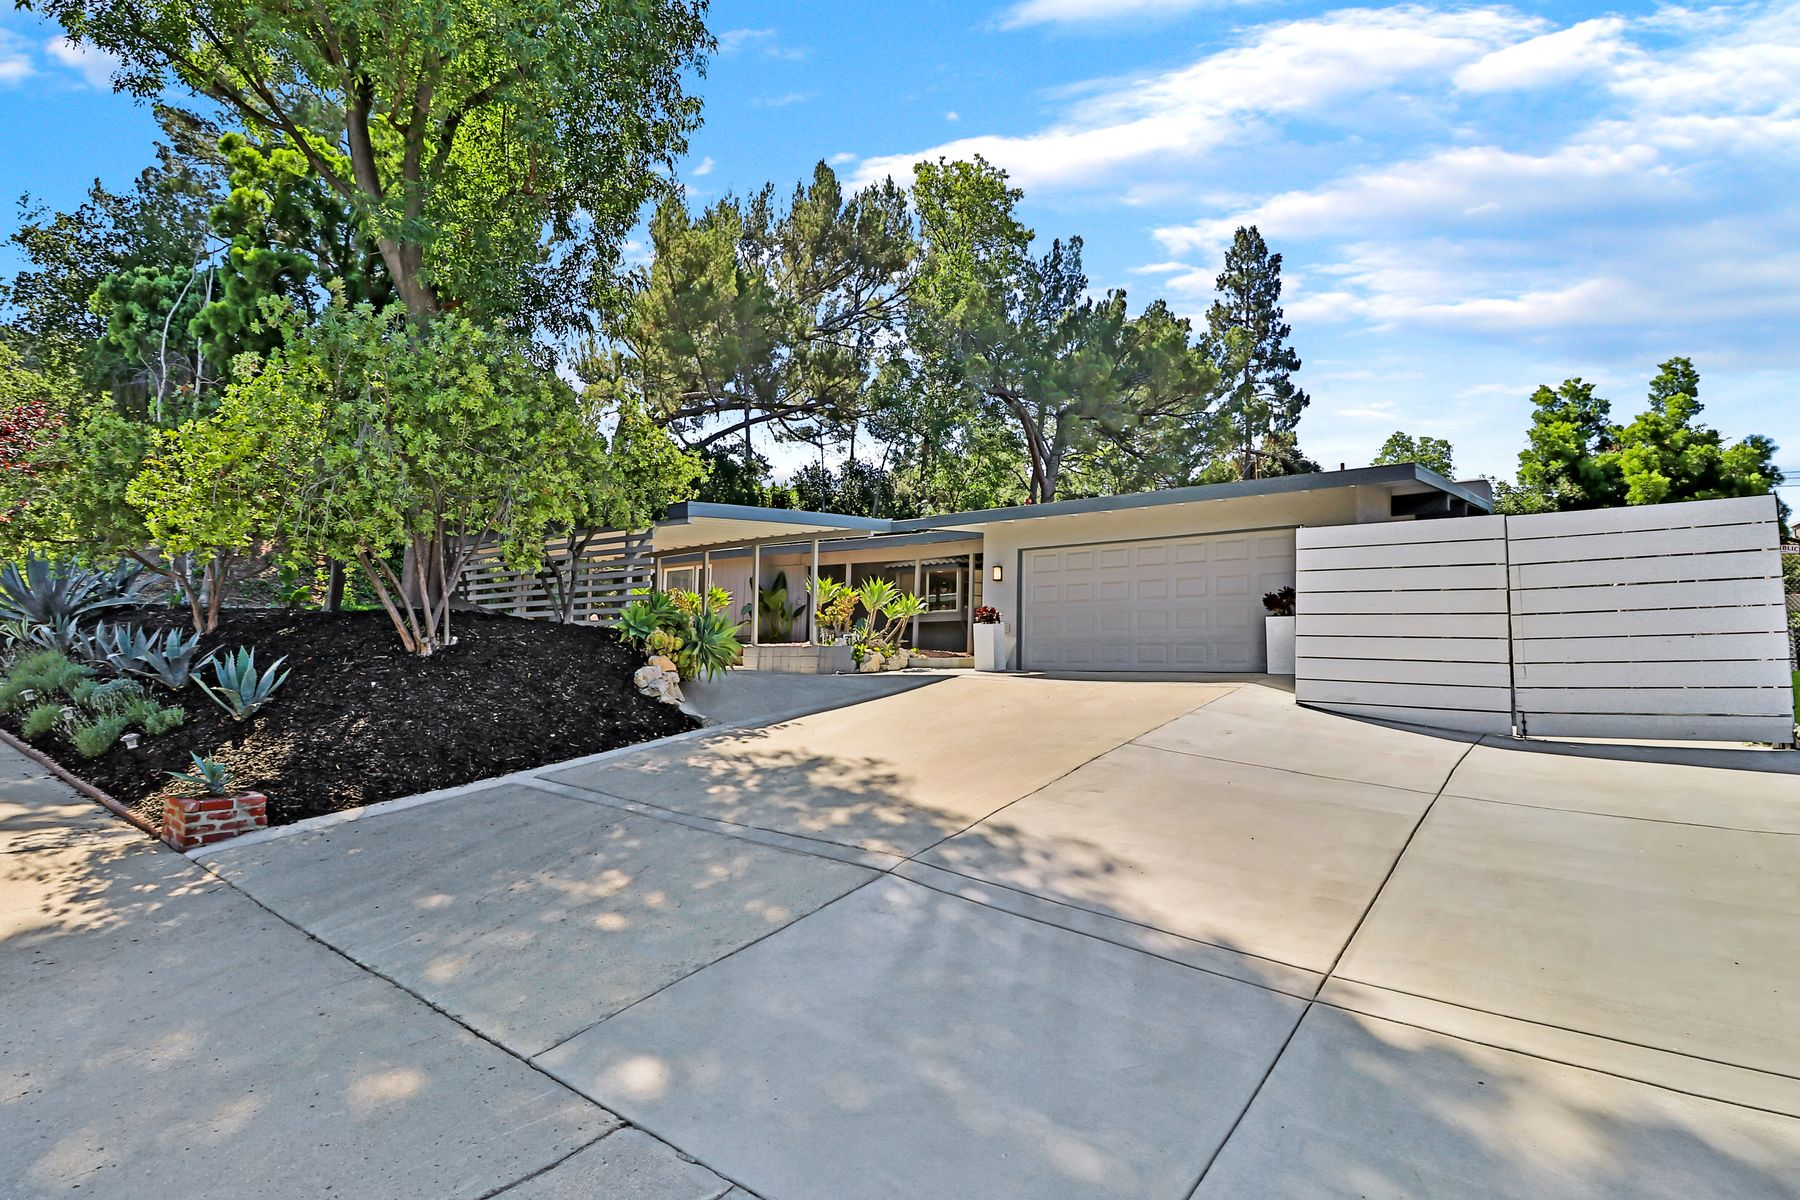 Single Family Homes for Sale at Thousand Oaks Mid-Century Ranch 2508 Hood Dr. Thousand Oaks, California 91362 United States